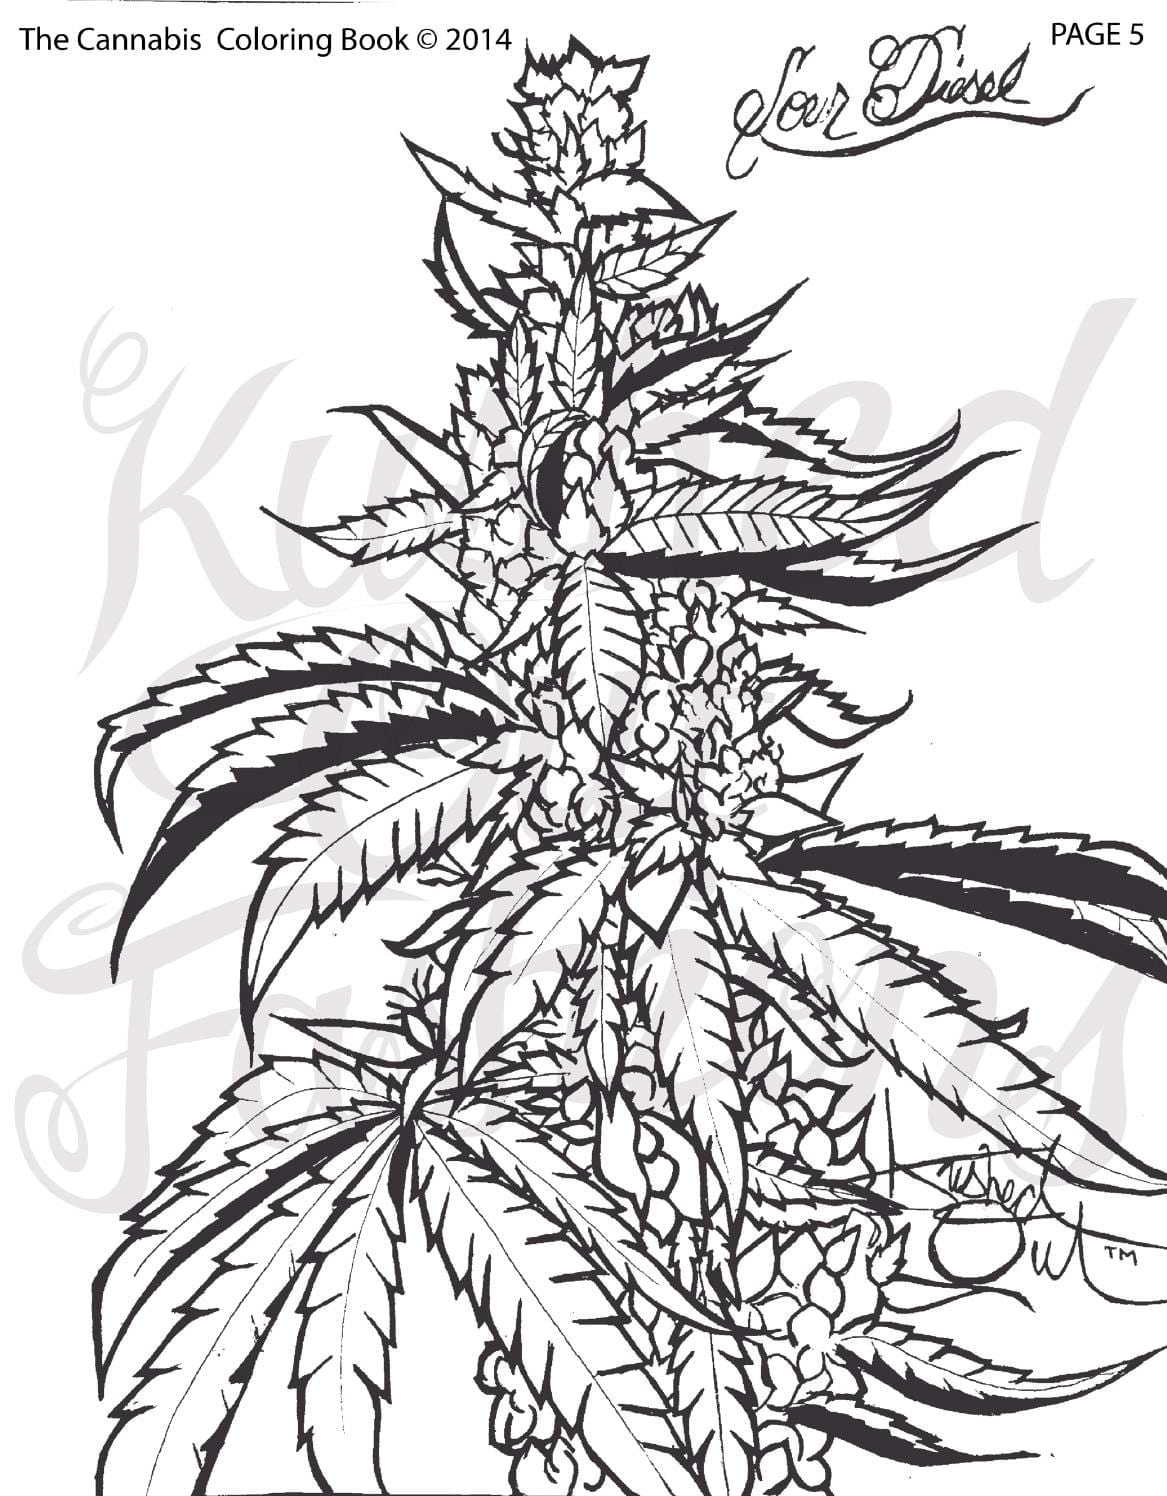 The Cannabis Coloring Book Vol  1   Issue 1